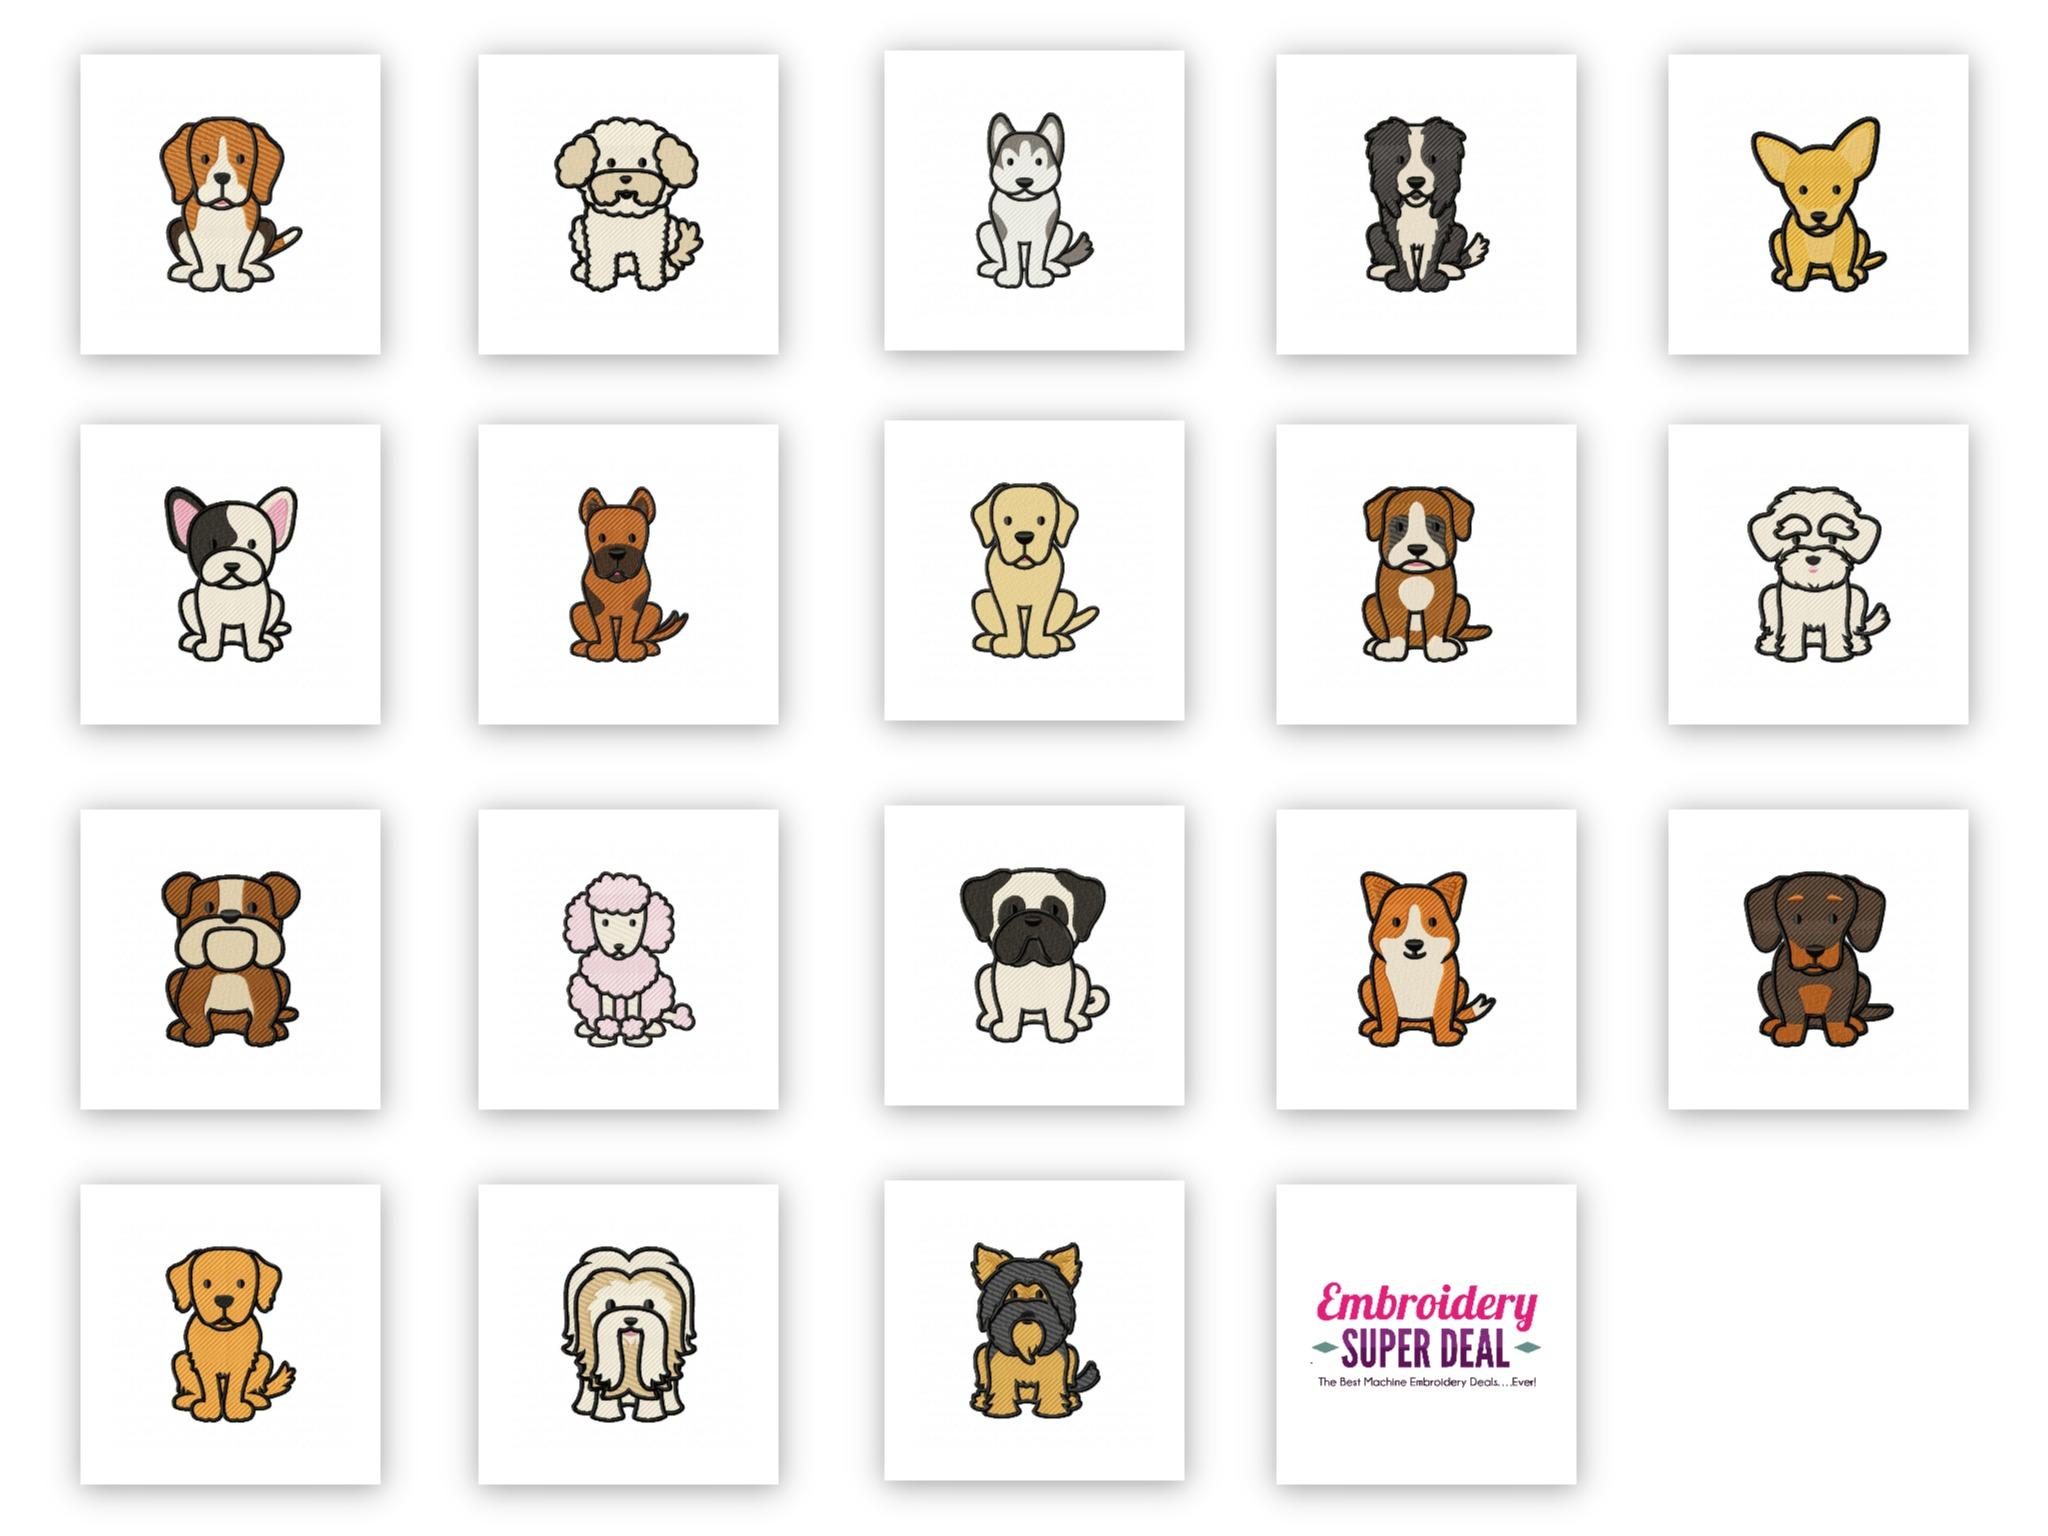 70 Designs 36 Dog Breeds Embroidery Design Pack Plus